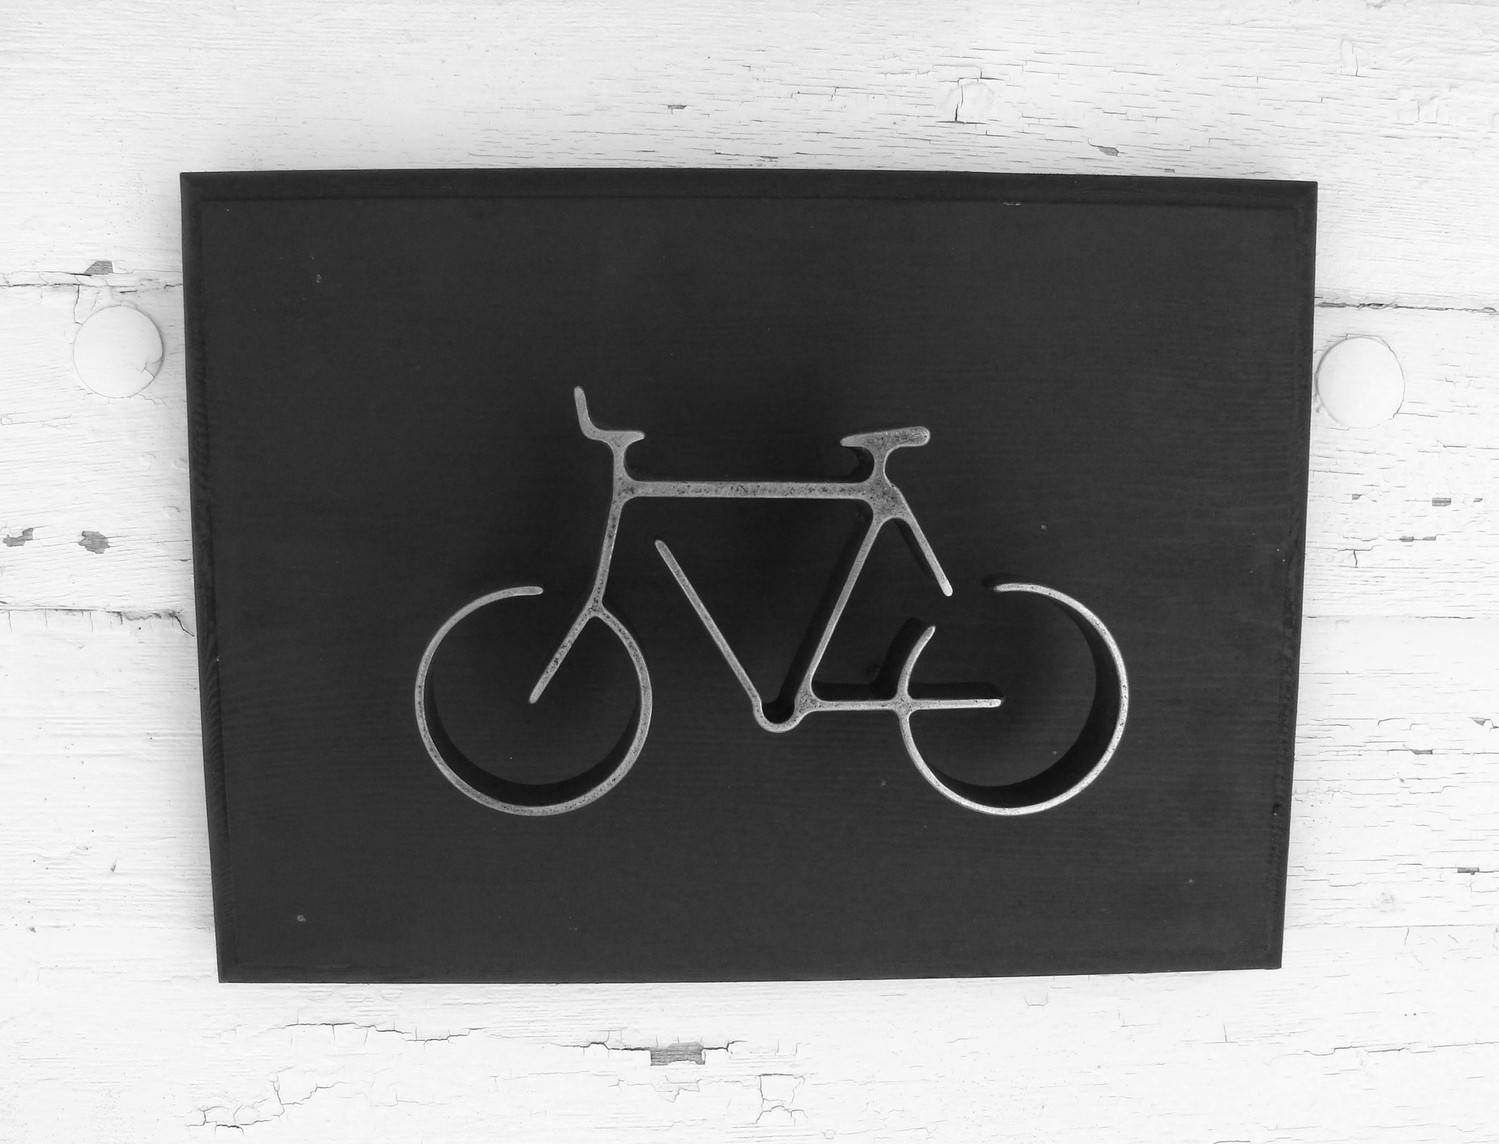 Metal Bike Wall Art Sign Bicycle Wall Hanging Home Or Office Pertaining To Best And Newest Bicycle Wall Art Decor (View 11 of 20)